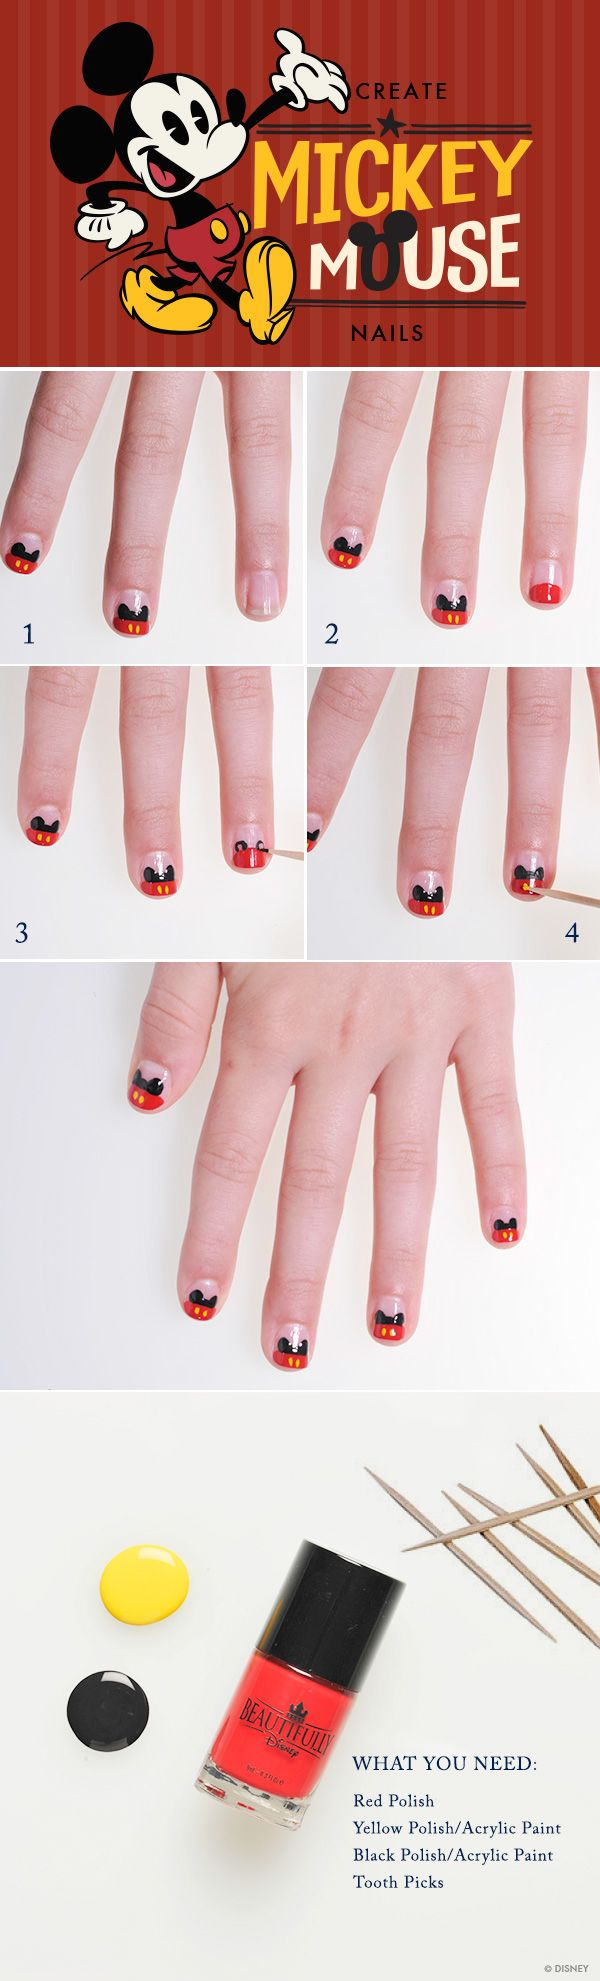 DIY Mickey Mouse Nails #WaltDisneyWorld #MickeyMouse #nails #Disney ...